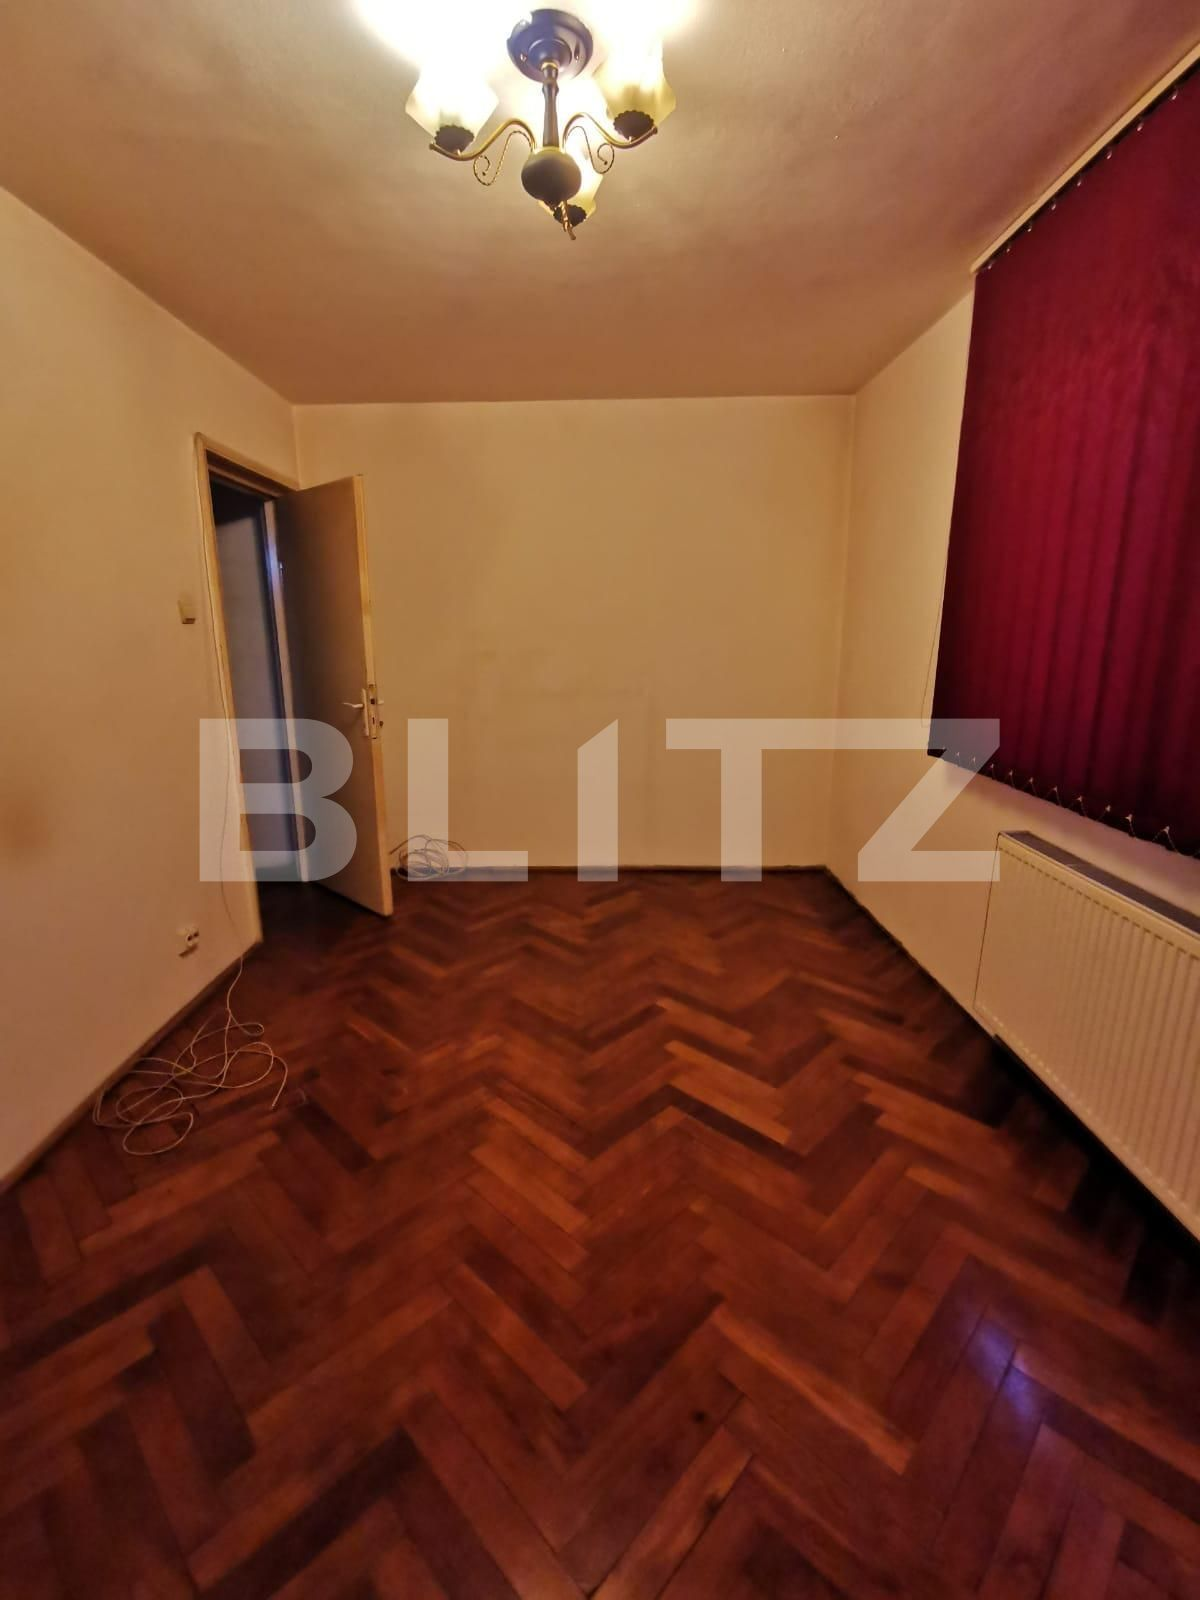 Apartament cu 3 camere, partial mobilat, 70 de mp, pet friendly, zona strazii Brancusi